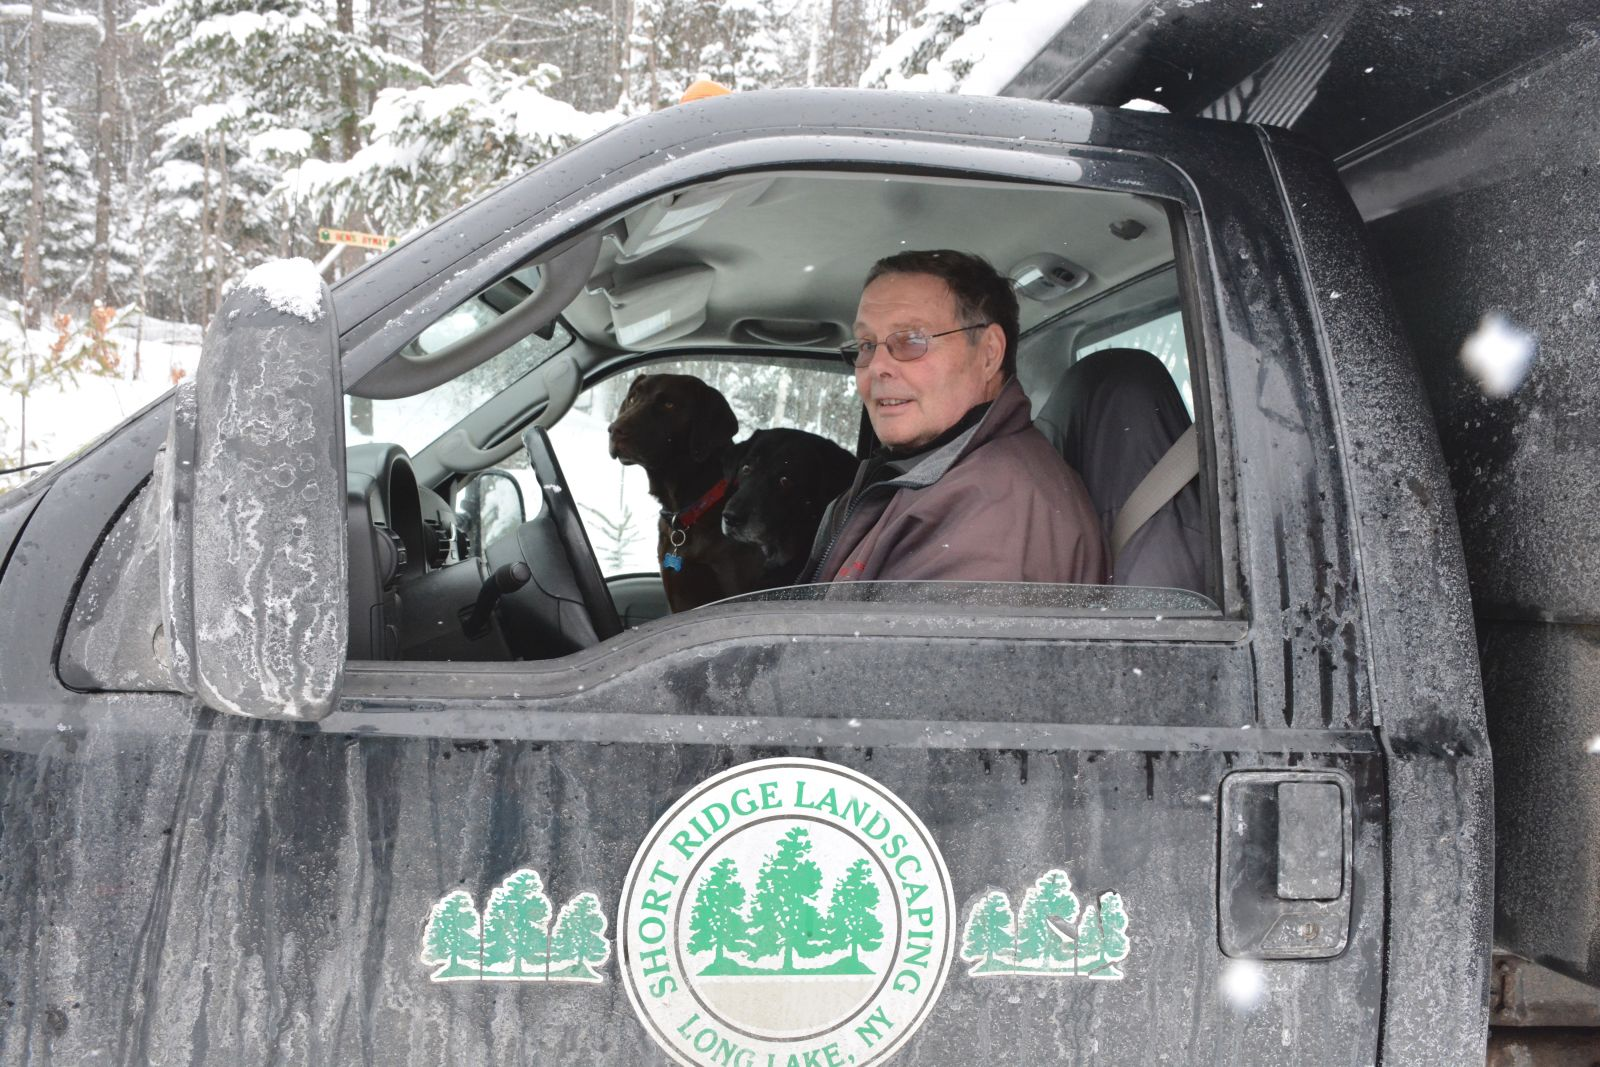 The plowing crew – Gilly, left, alongside his buddy, Misty, and my dad at the helm.